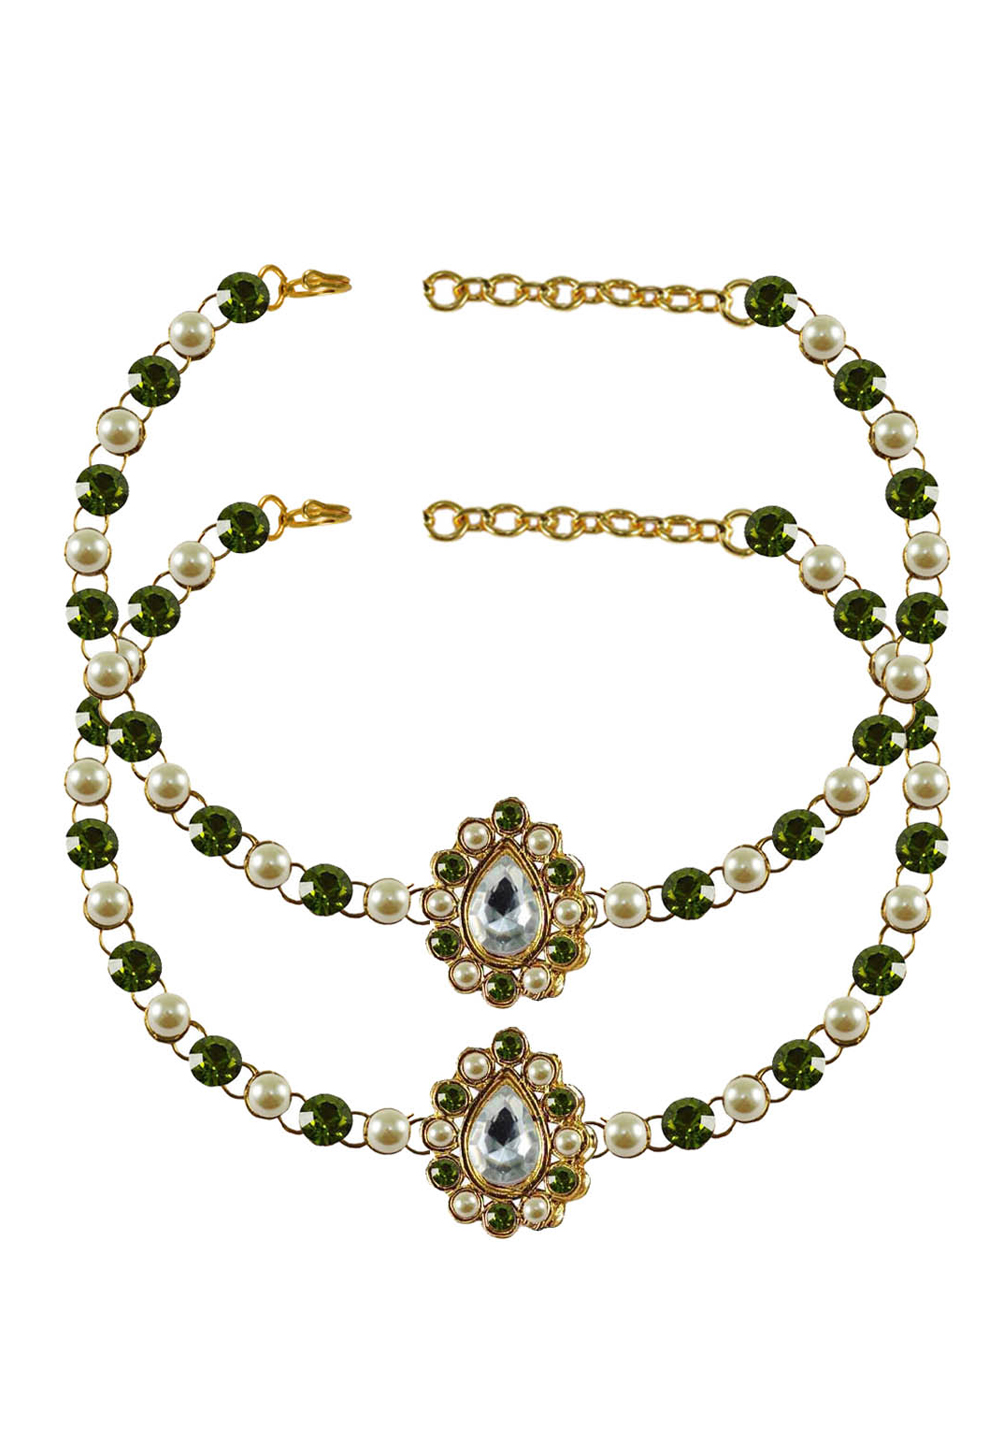 Green Brass Gold Plated Anklets 171364